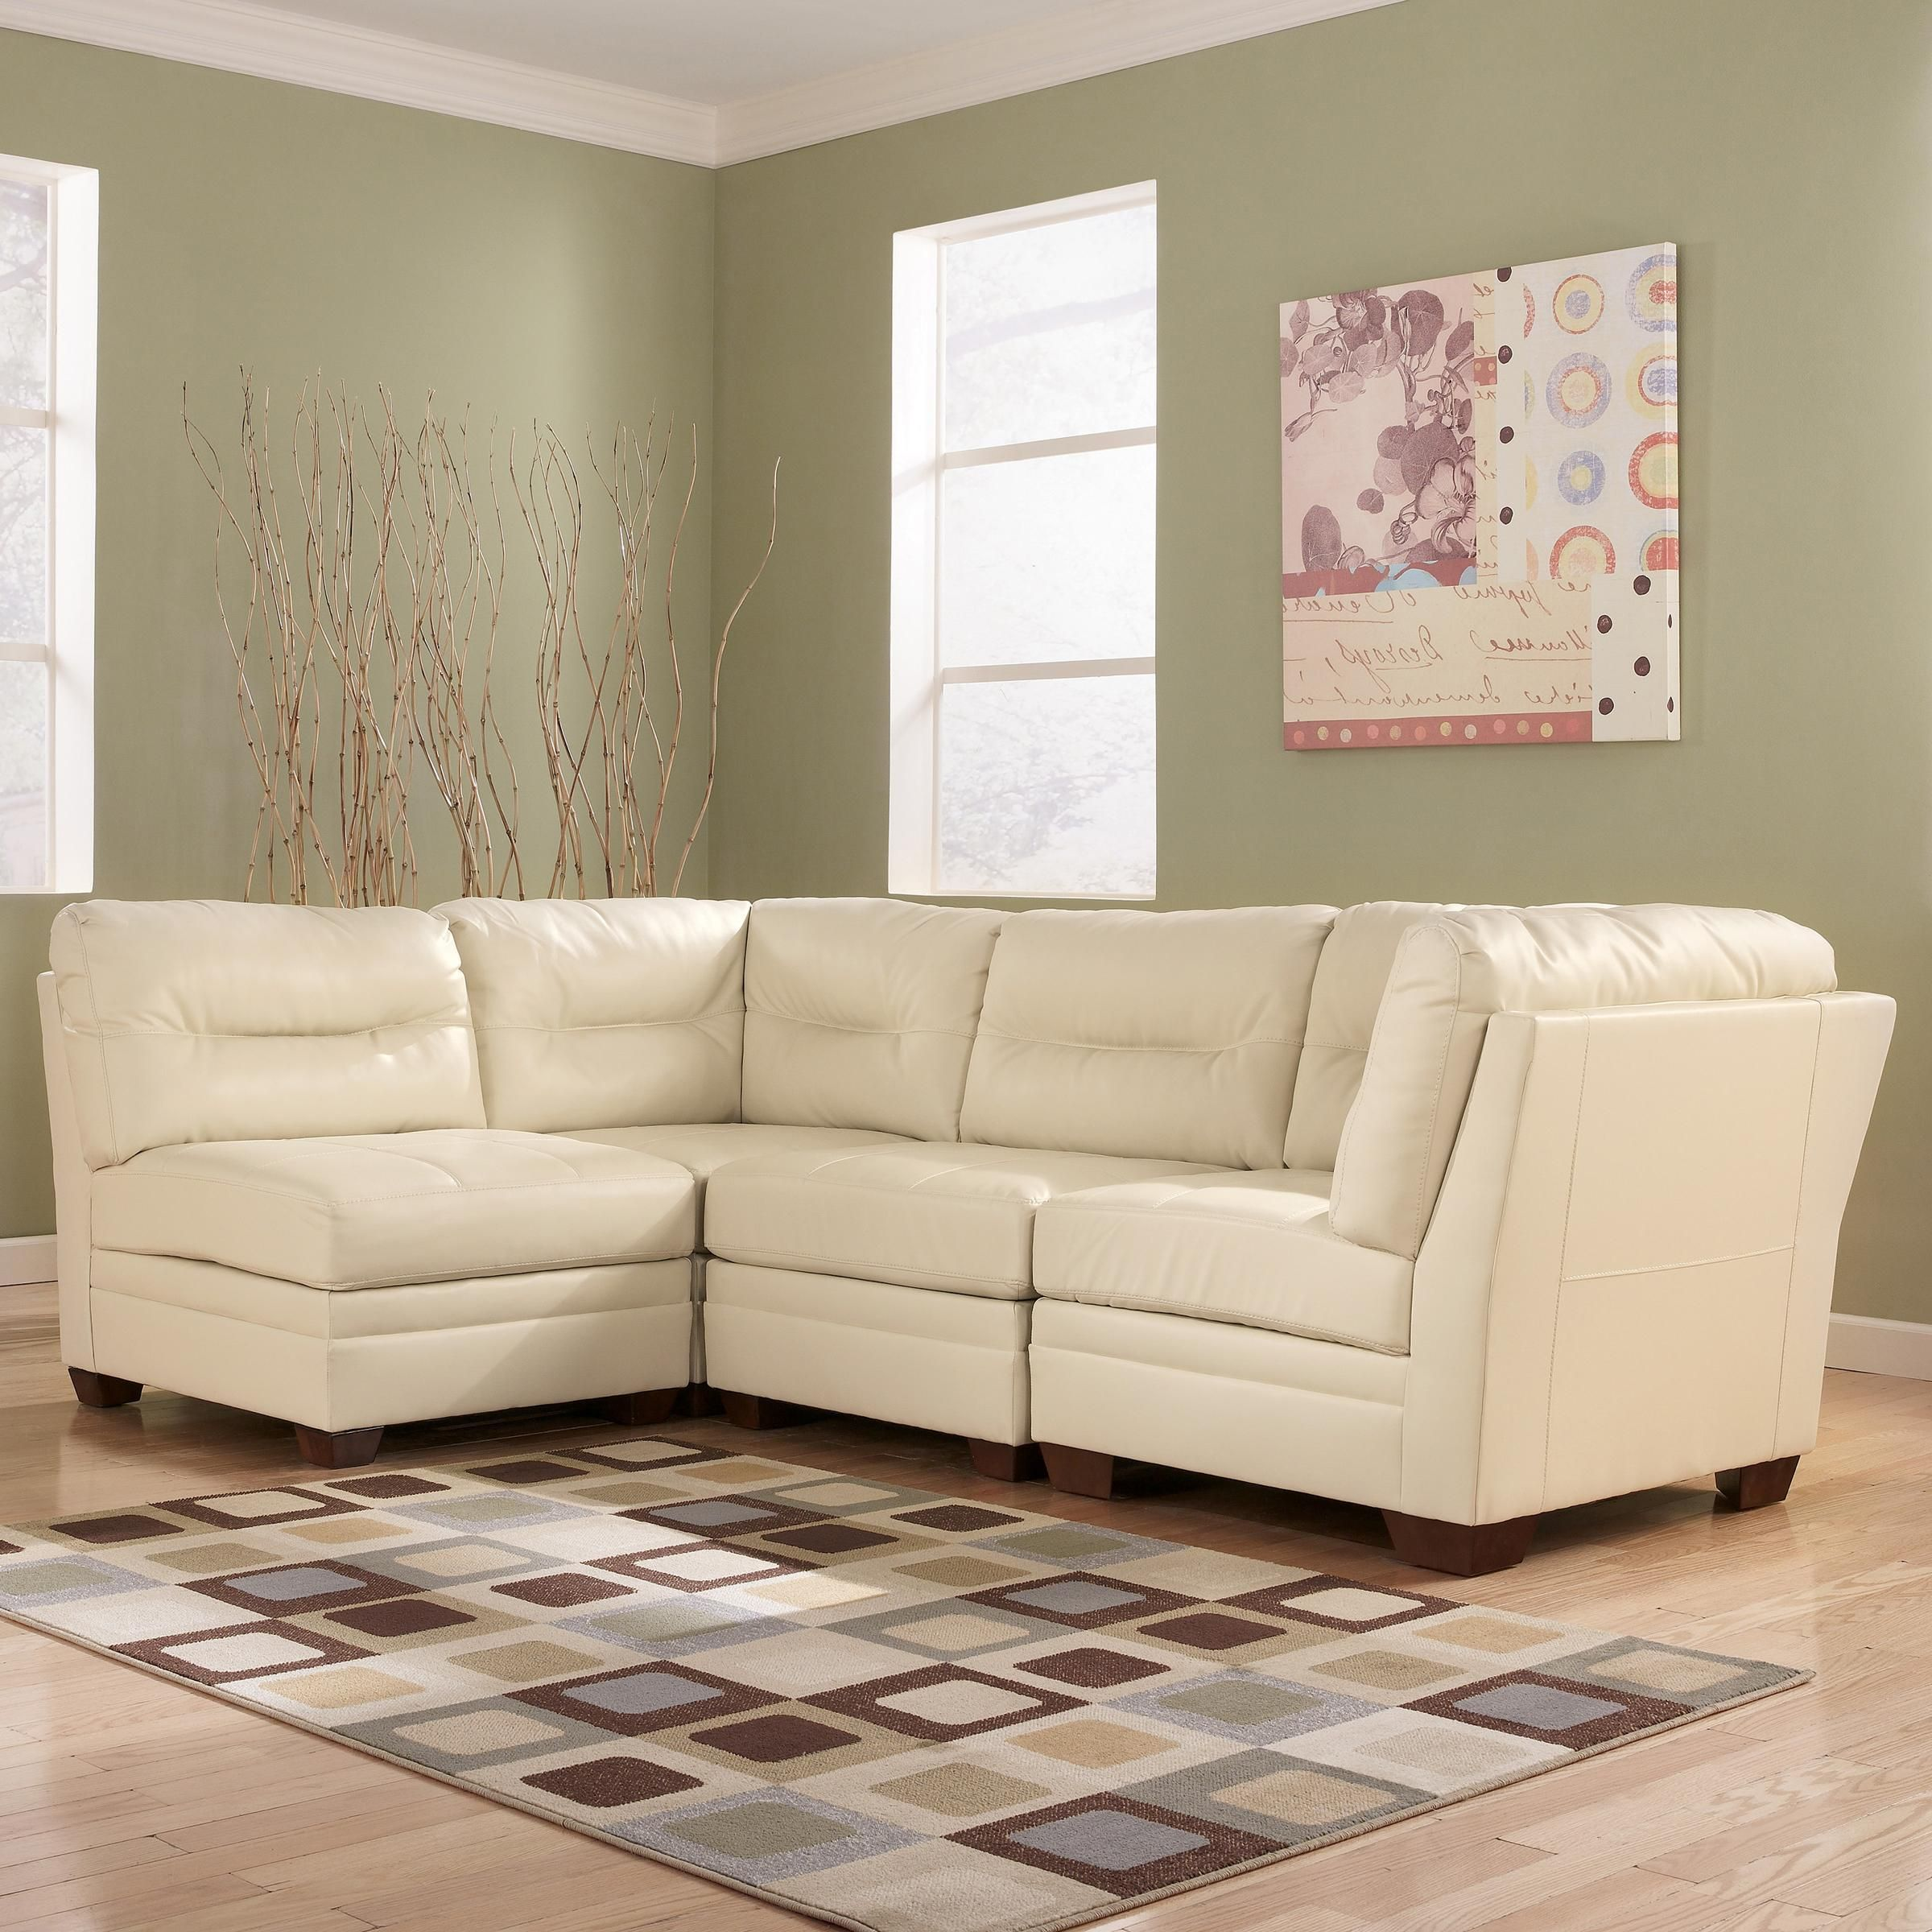 Durablend ivory 4 piece leather sectional by signature - Ivory painted living room furniture ...